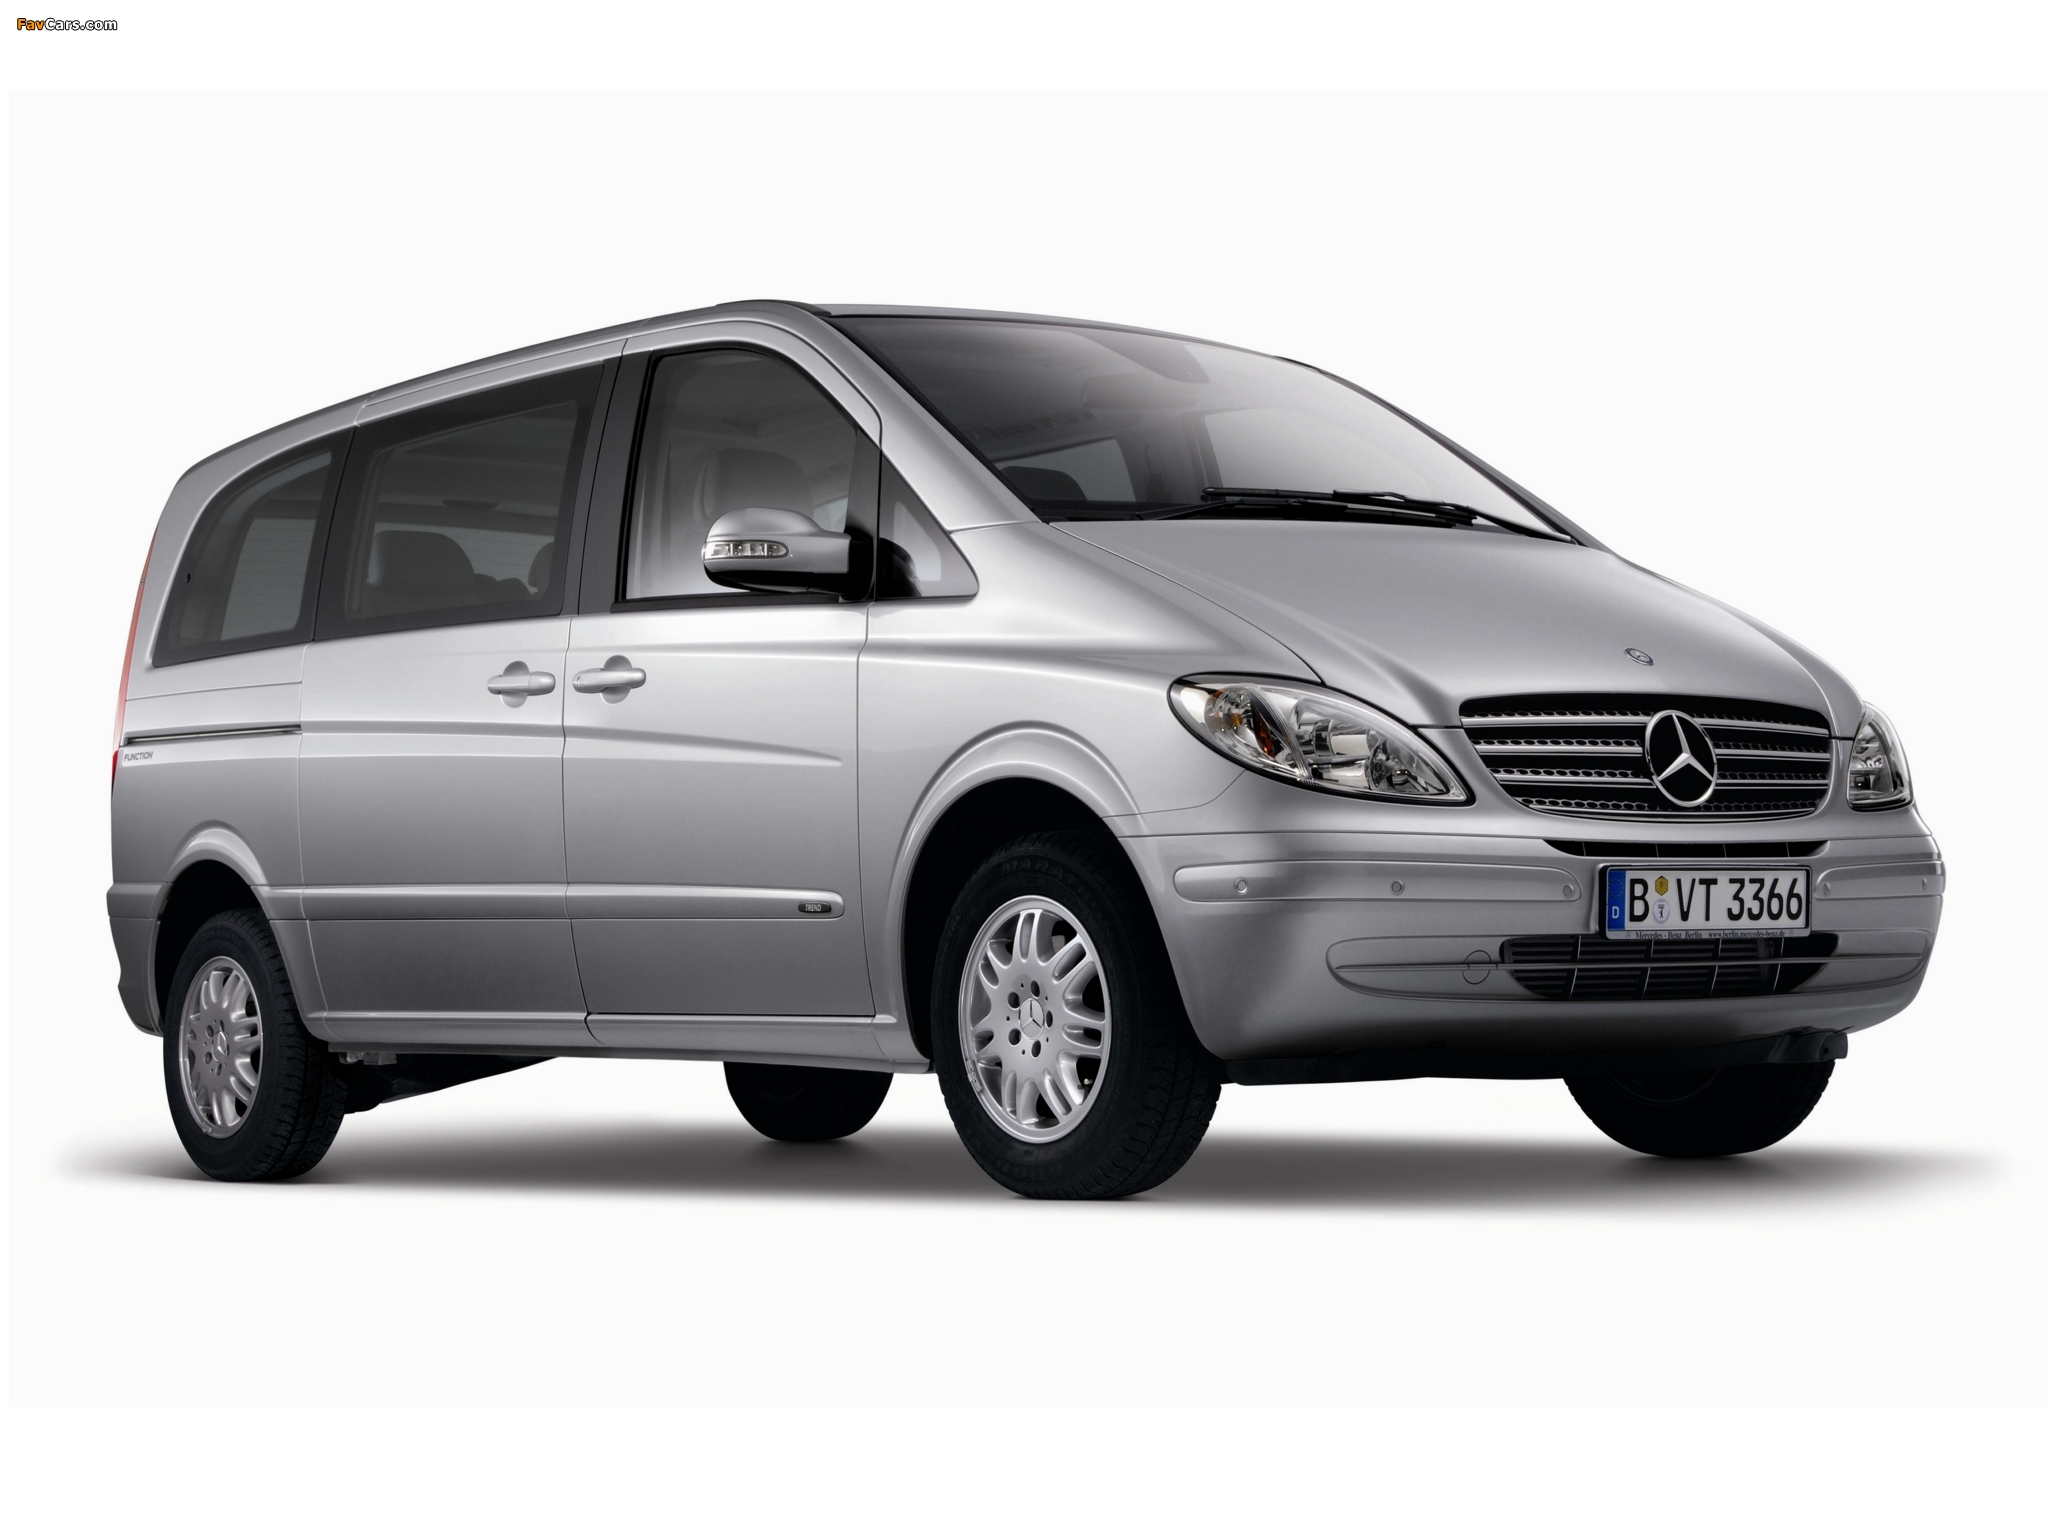 2003 Mercedes-Benz Viano #1